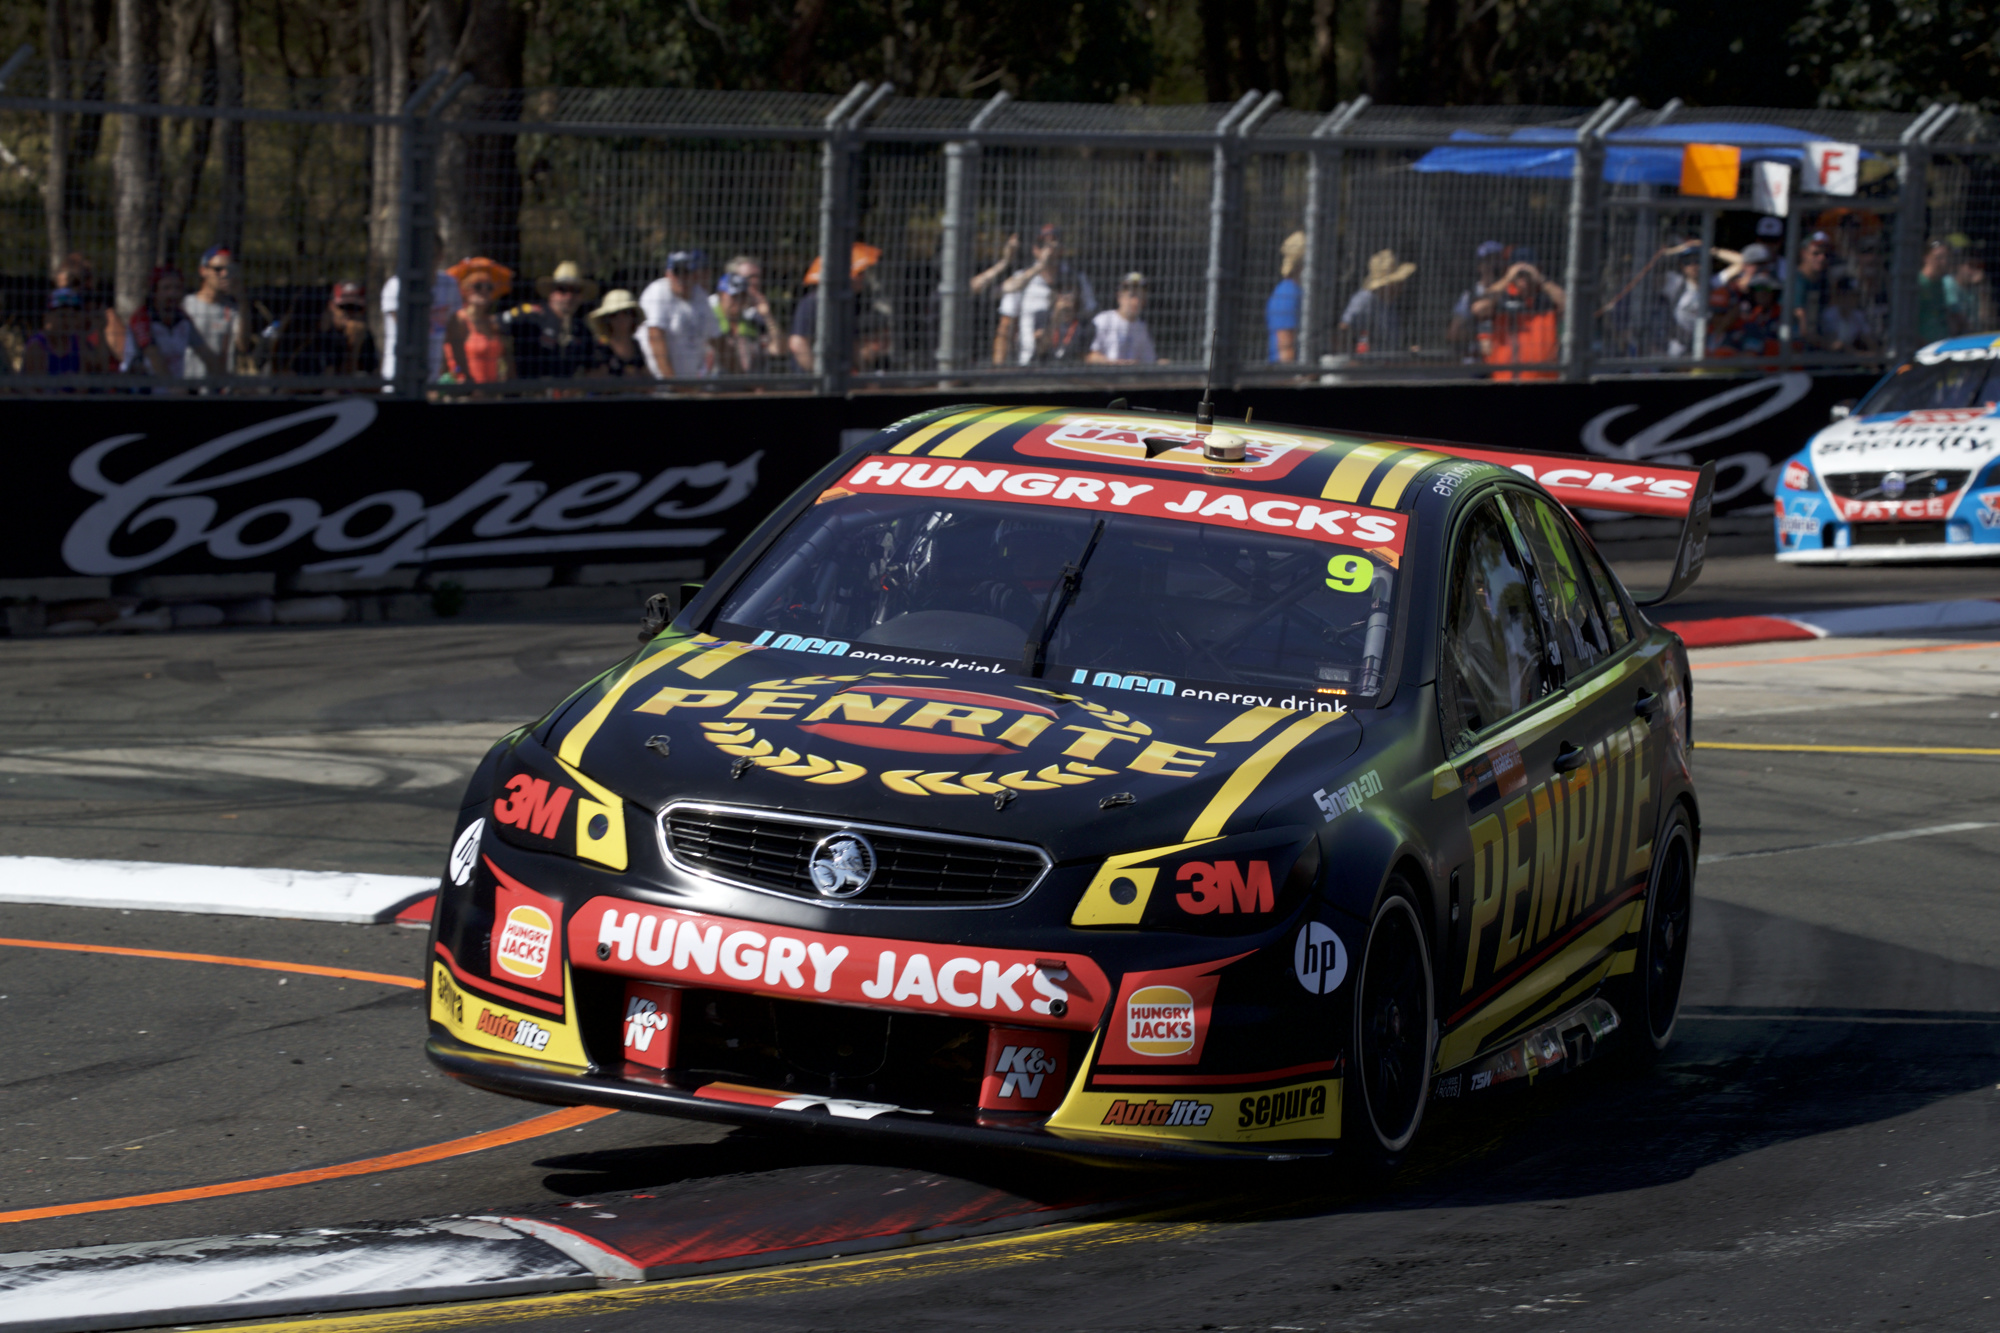 David Reynolds of Erebus Motorsport V8 during the Coates Hire Sydney 500,  at the Homebush Street Circuit, Sydney, New South Wales, December 04, 2016.